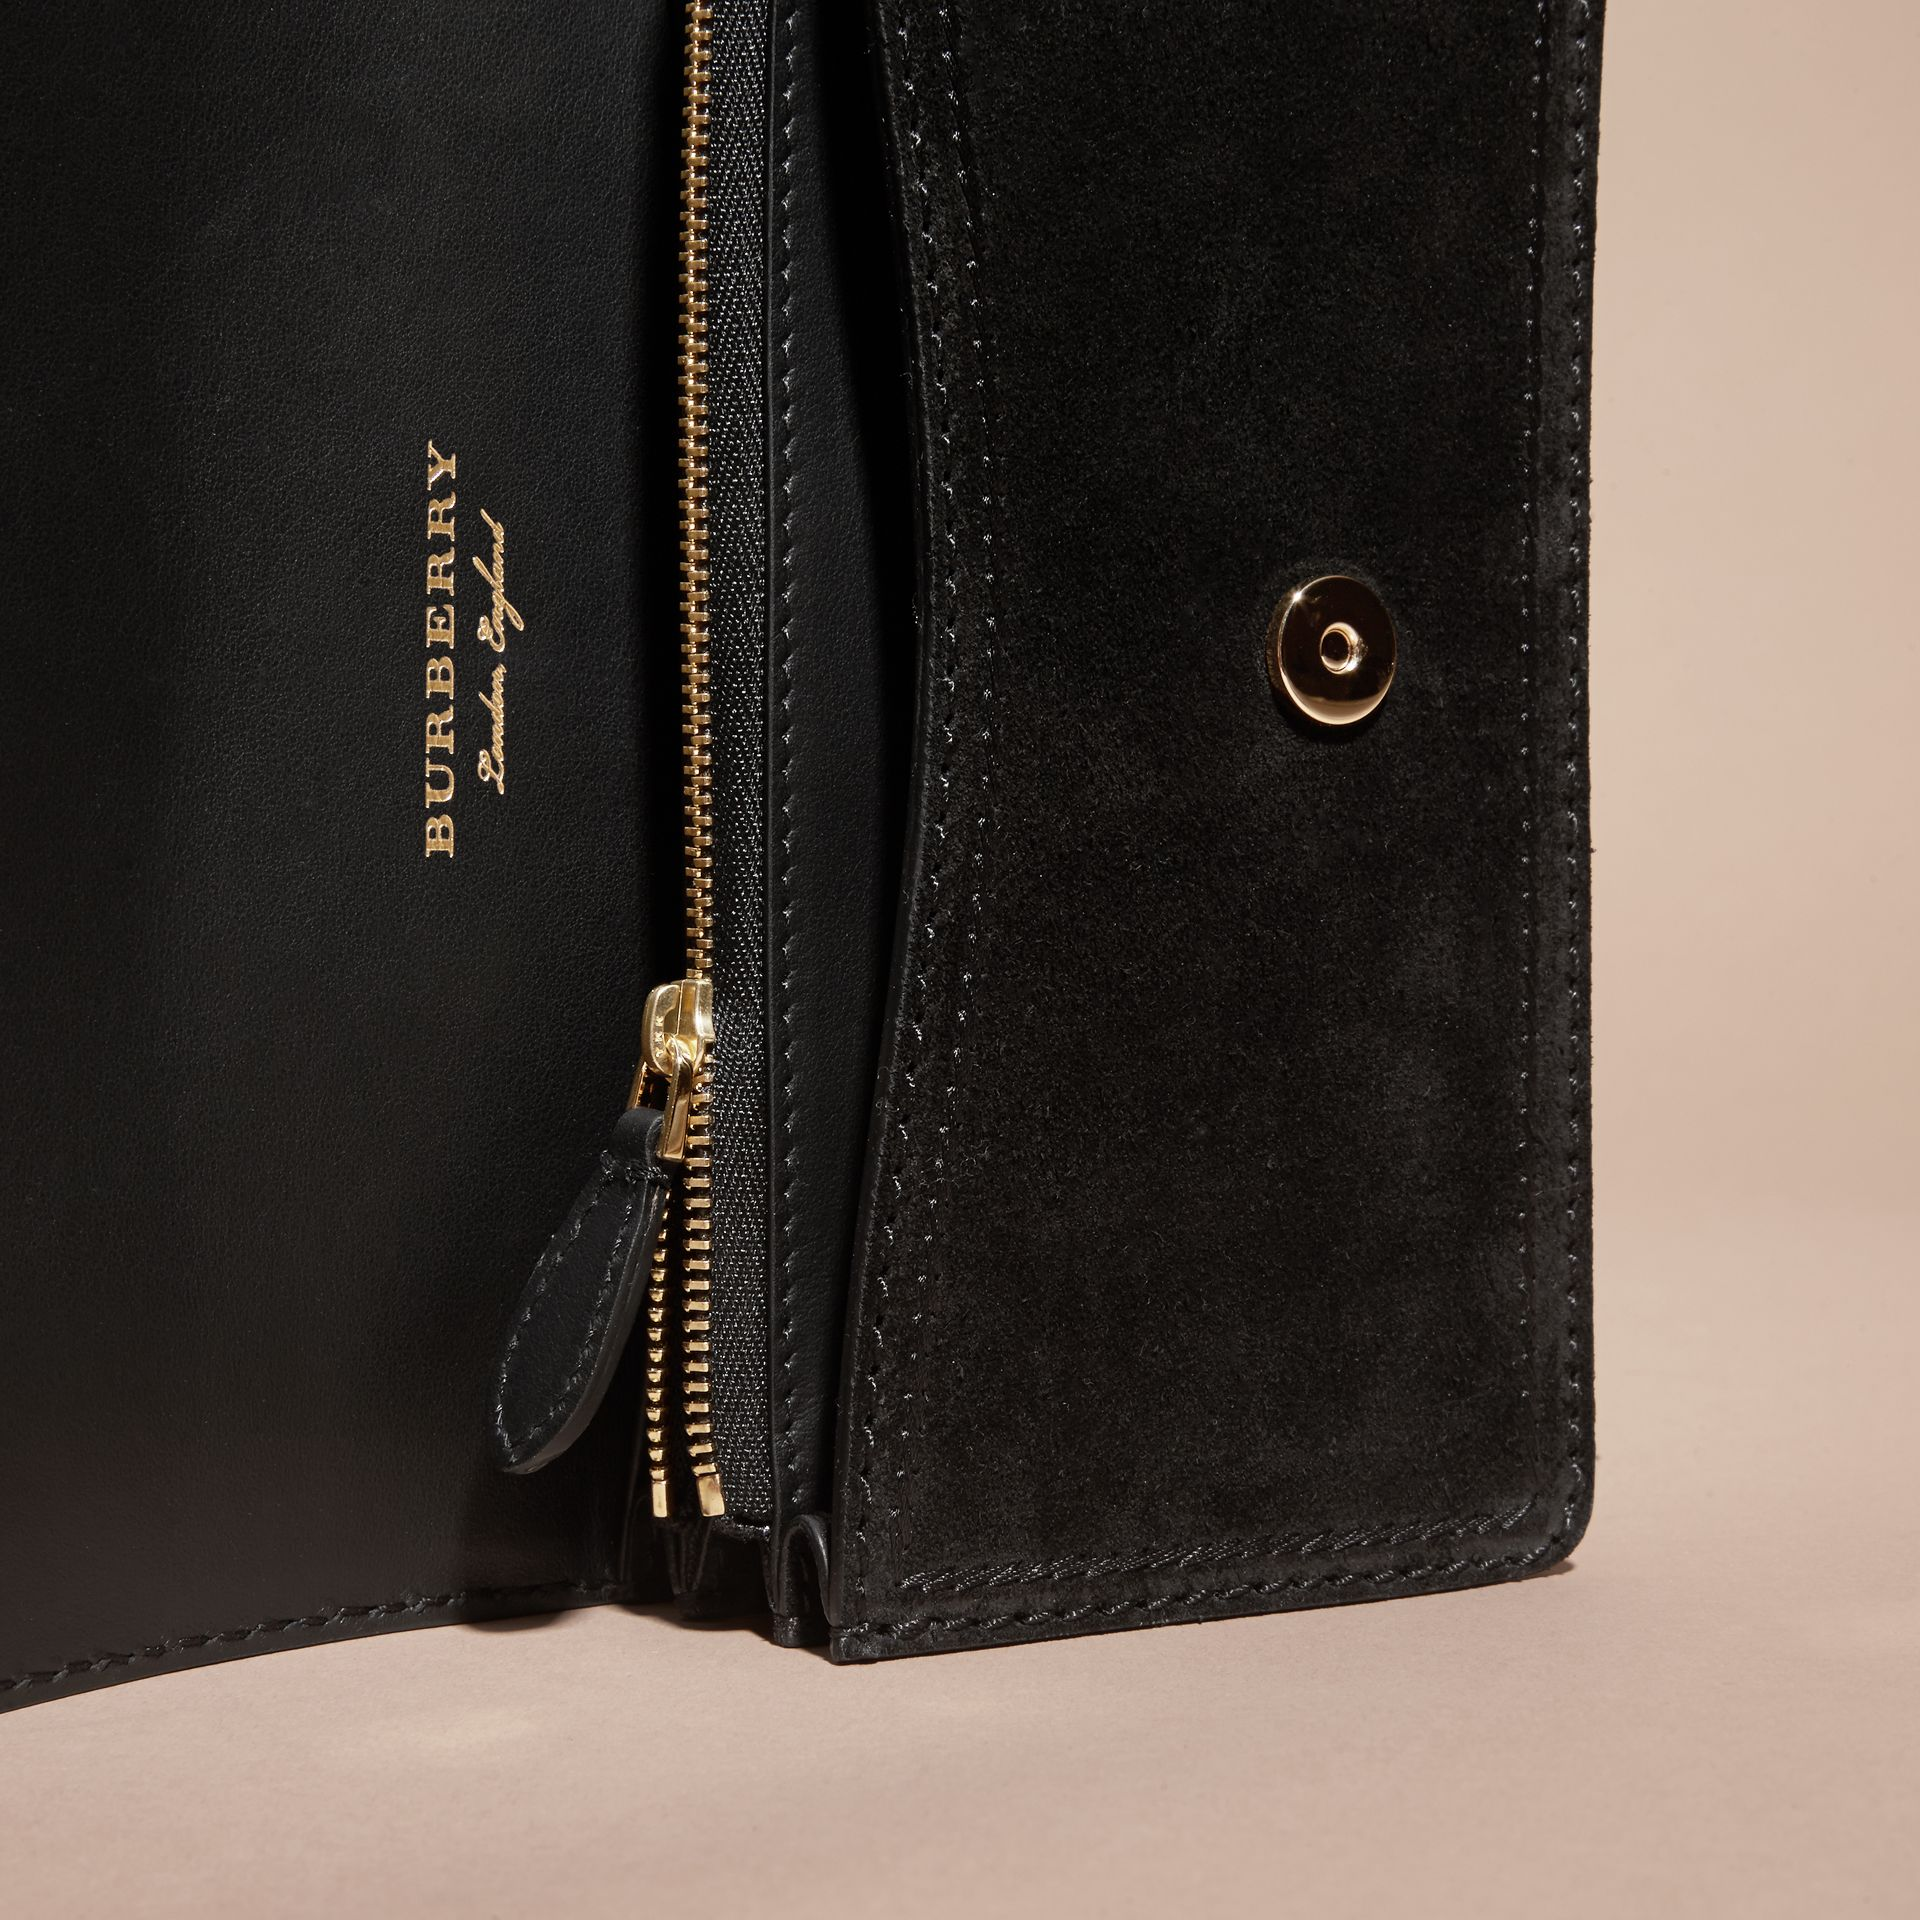 Black / tan The Small Buckle Bag in Suede with Topstitching Black / Tan - gallery image 6